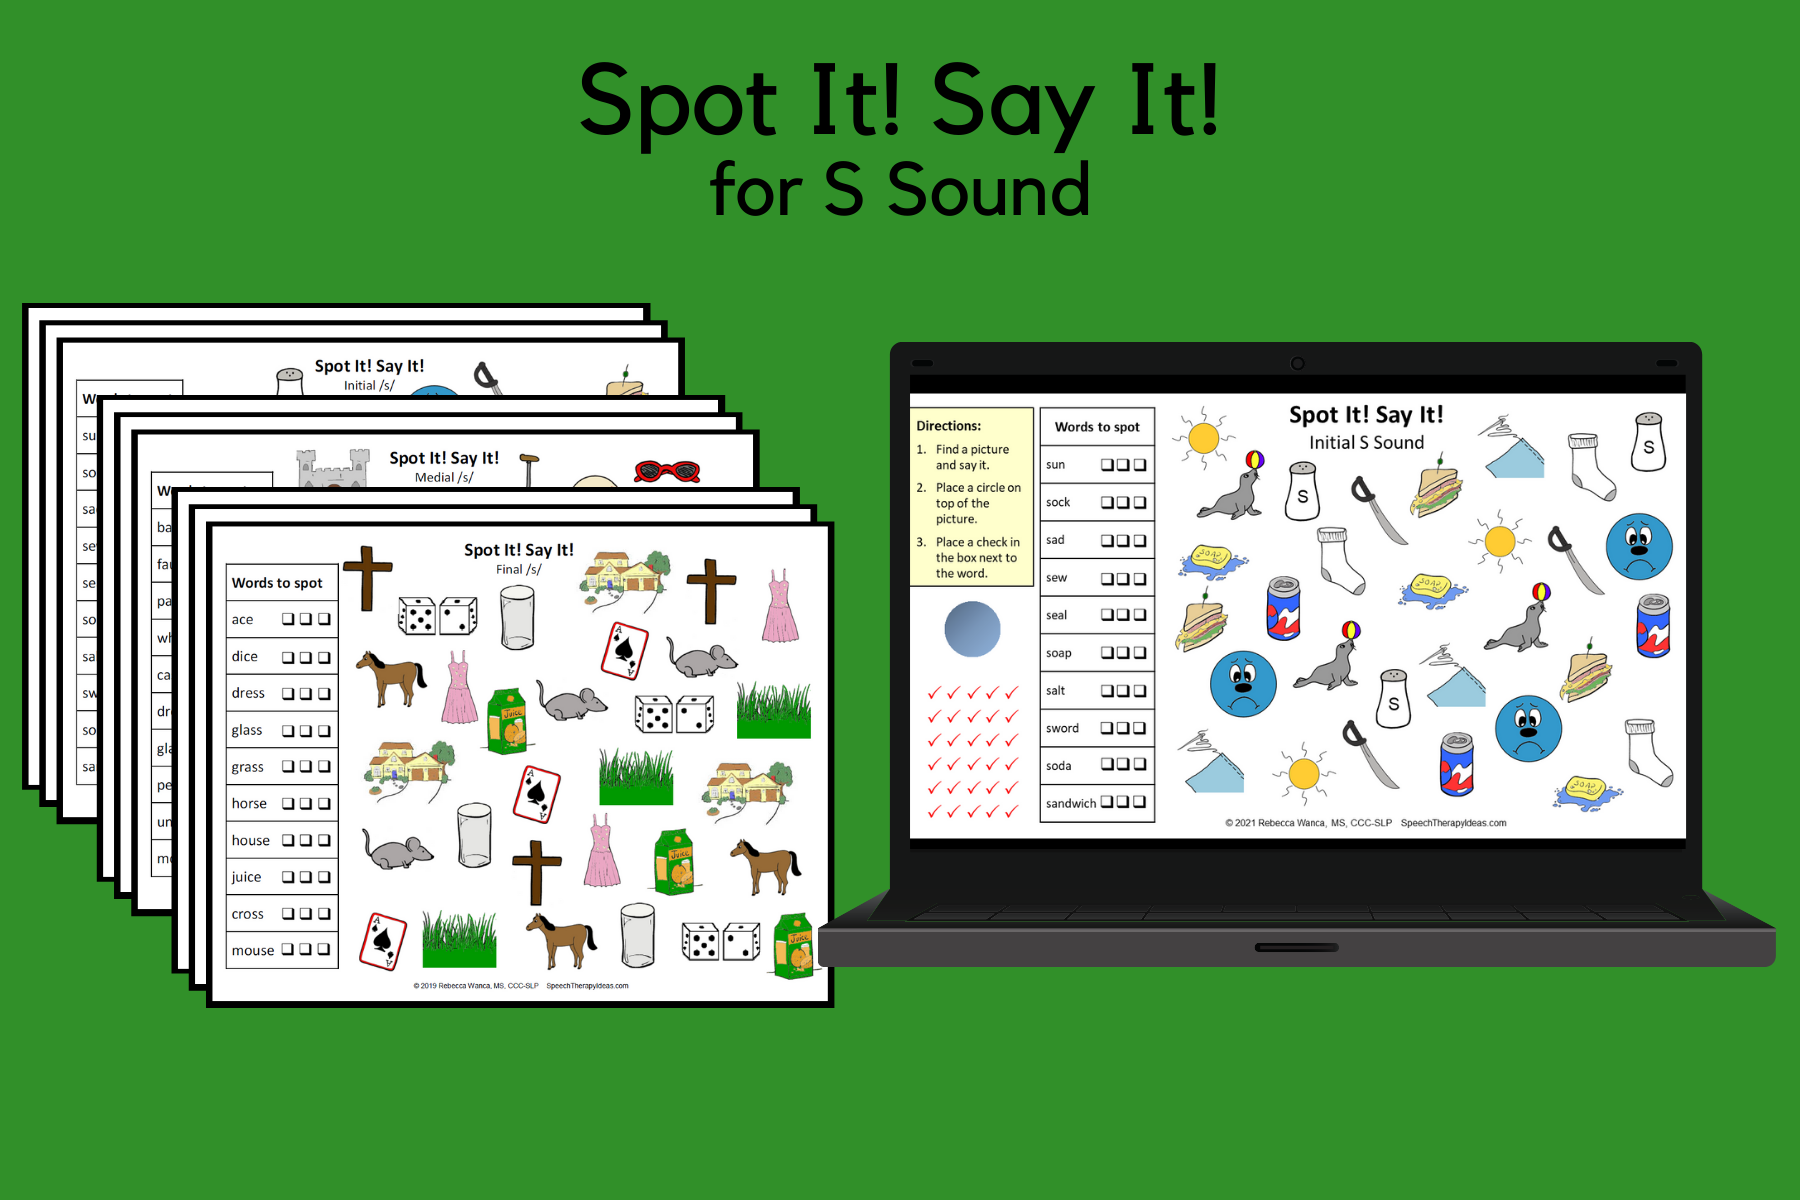 Spot It! Say It! Pages for S Sound